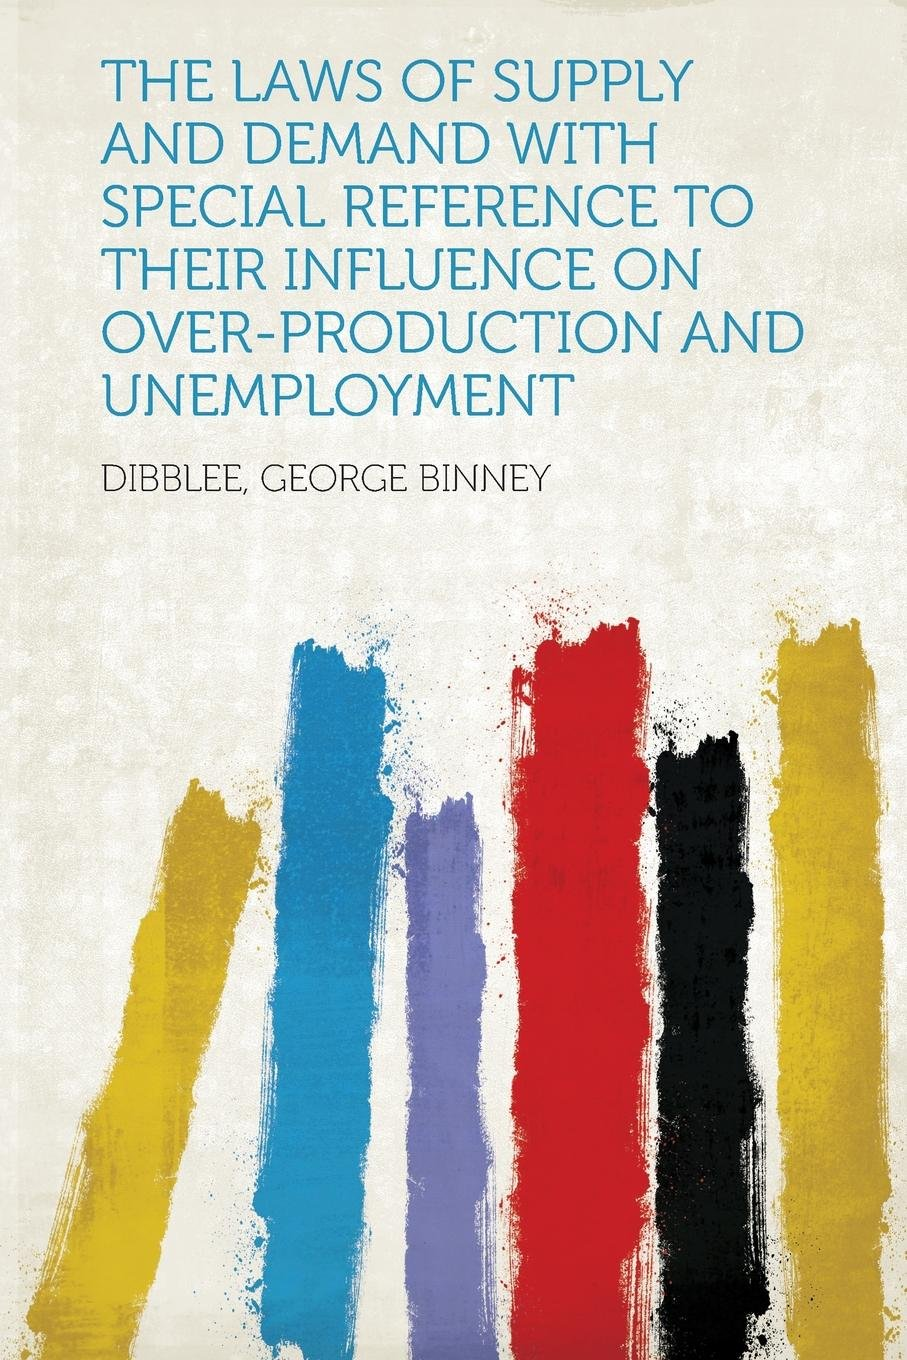 Download The Laws of Supply and Demand With Special Reference to Their Influence on Over-Production and Unemployment PDF